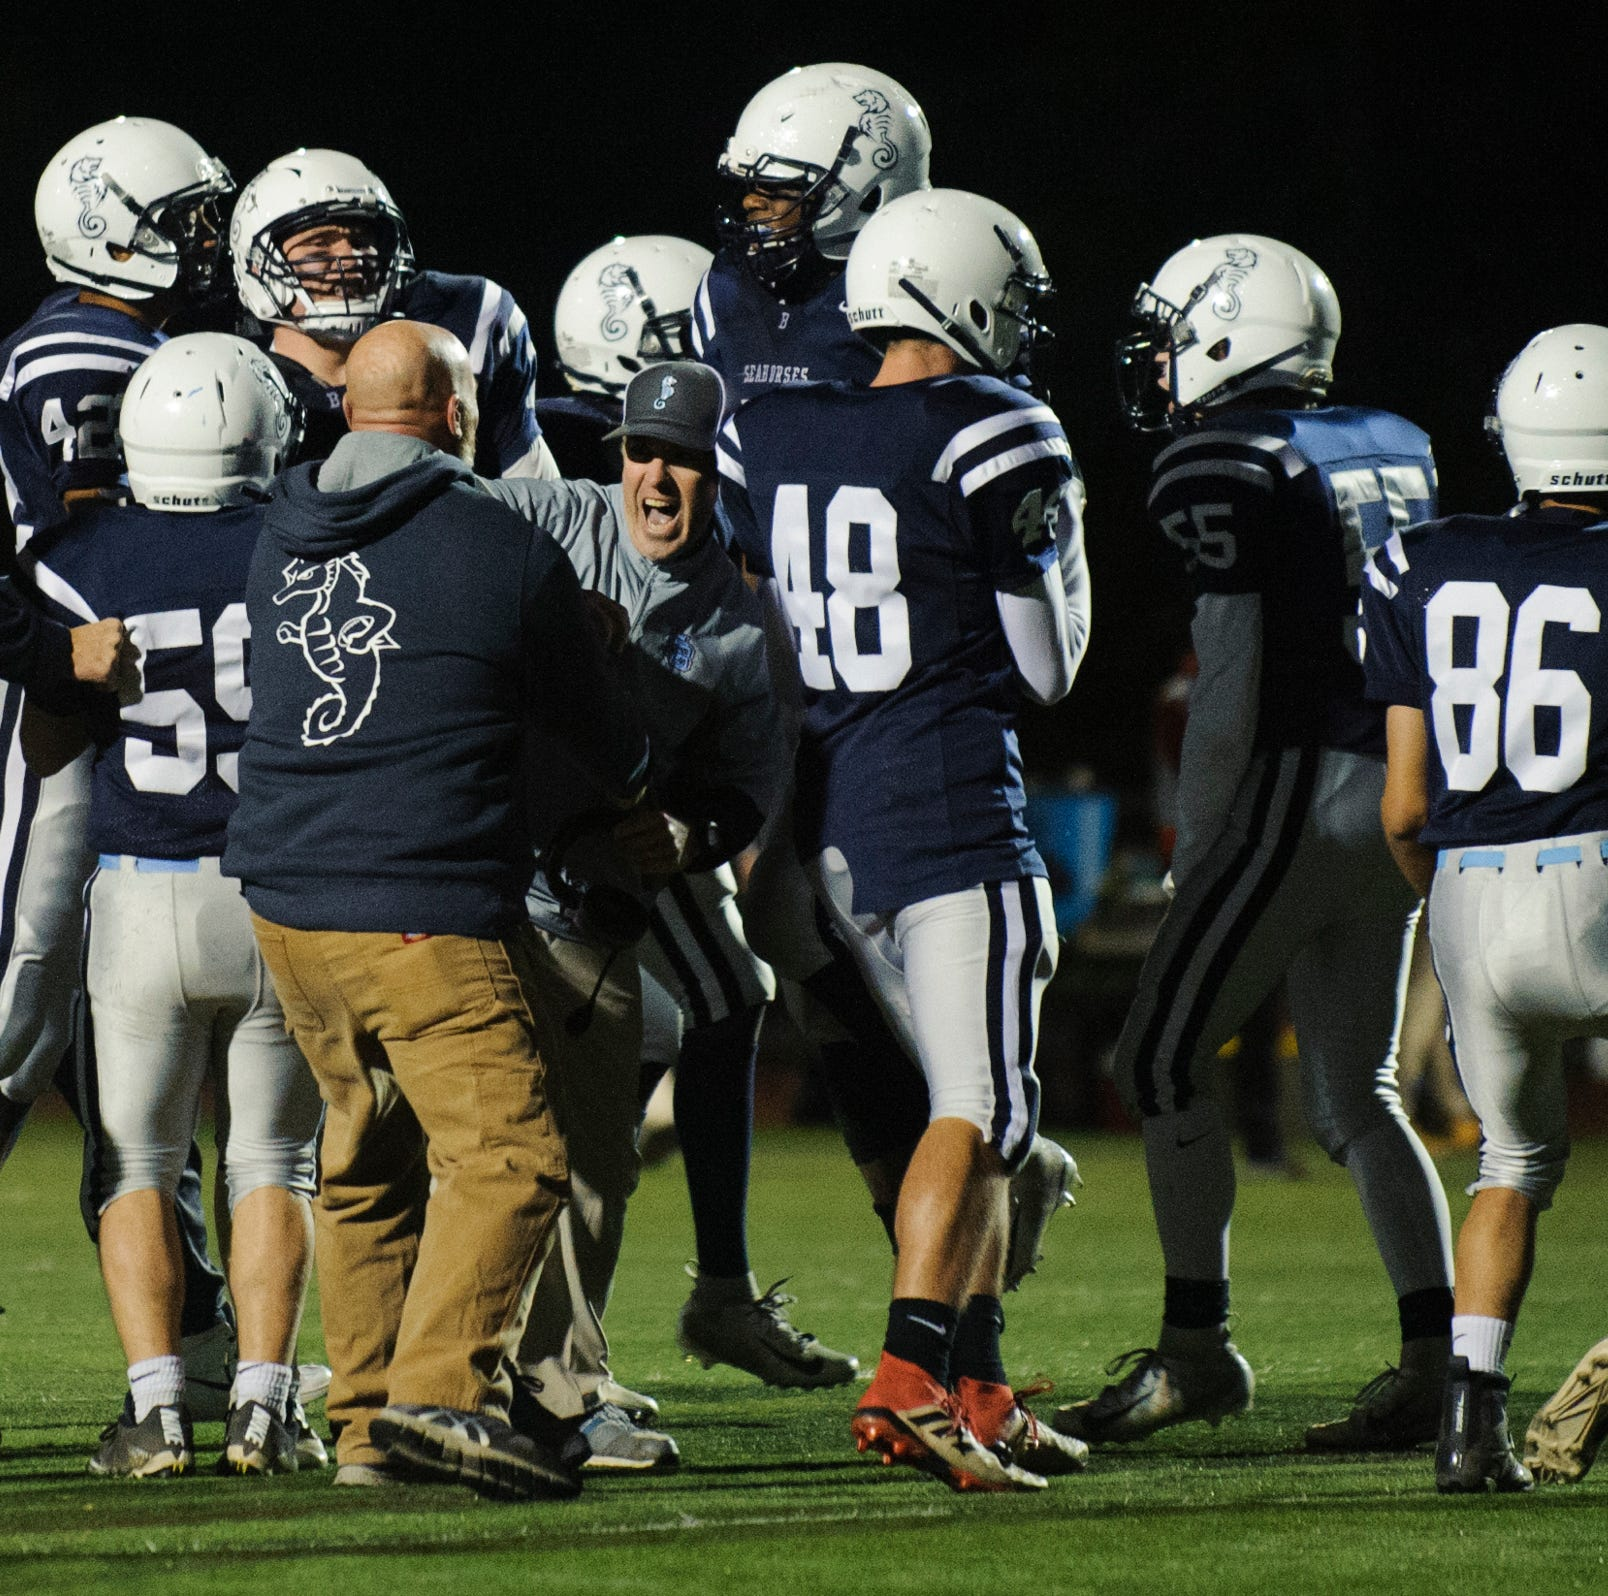 Vermont H.S. football: Making sense of the playoff picture after a wild Friday night